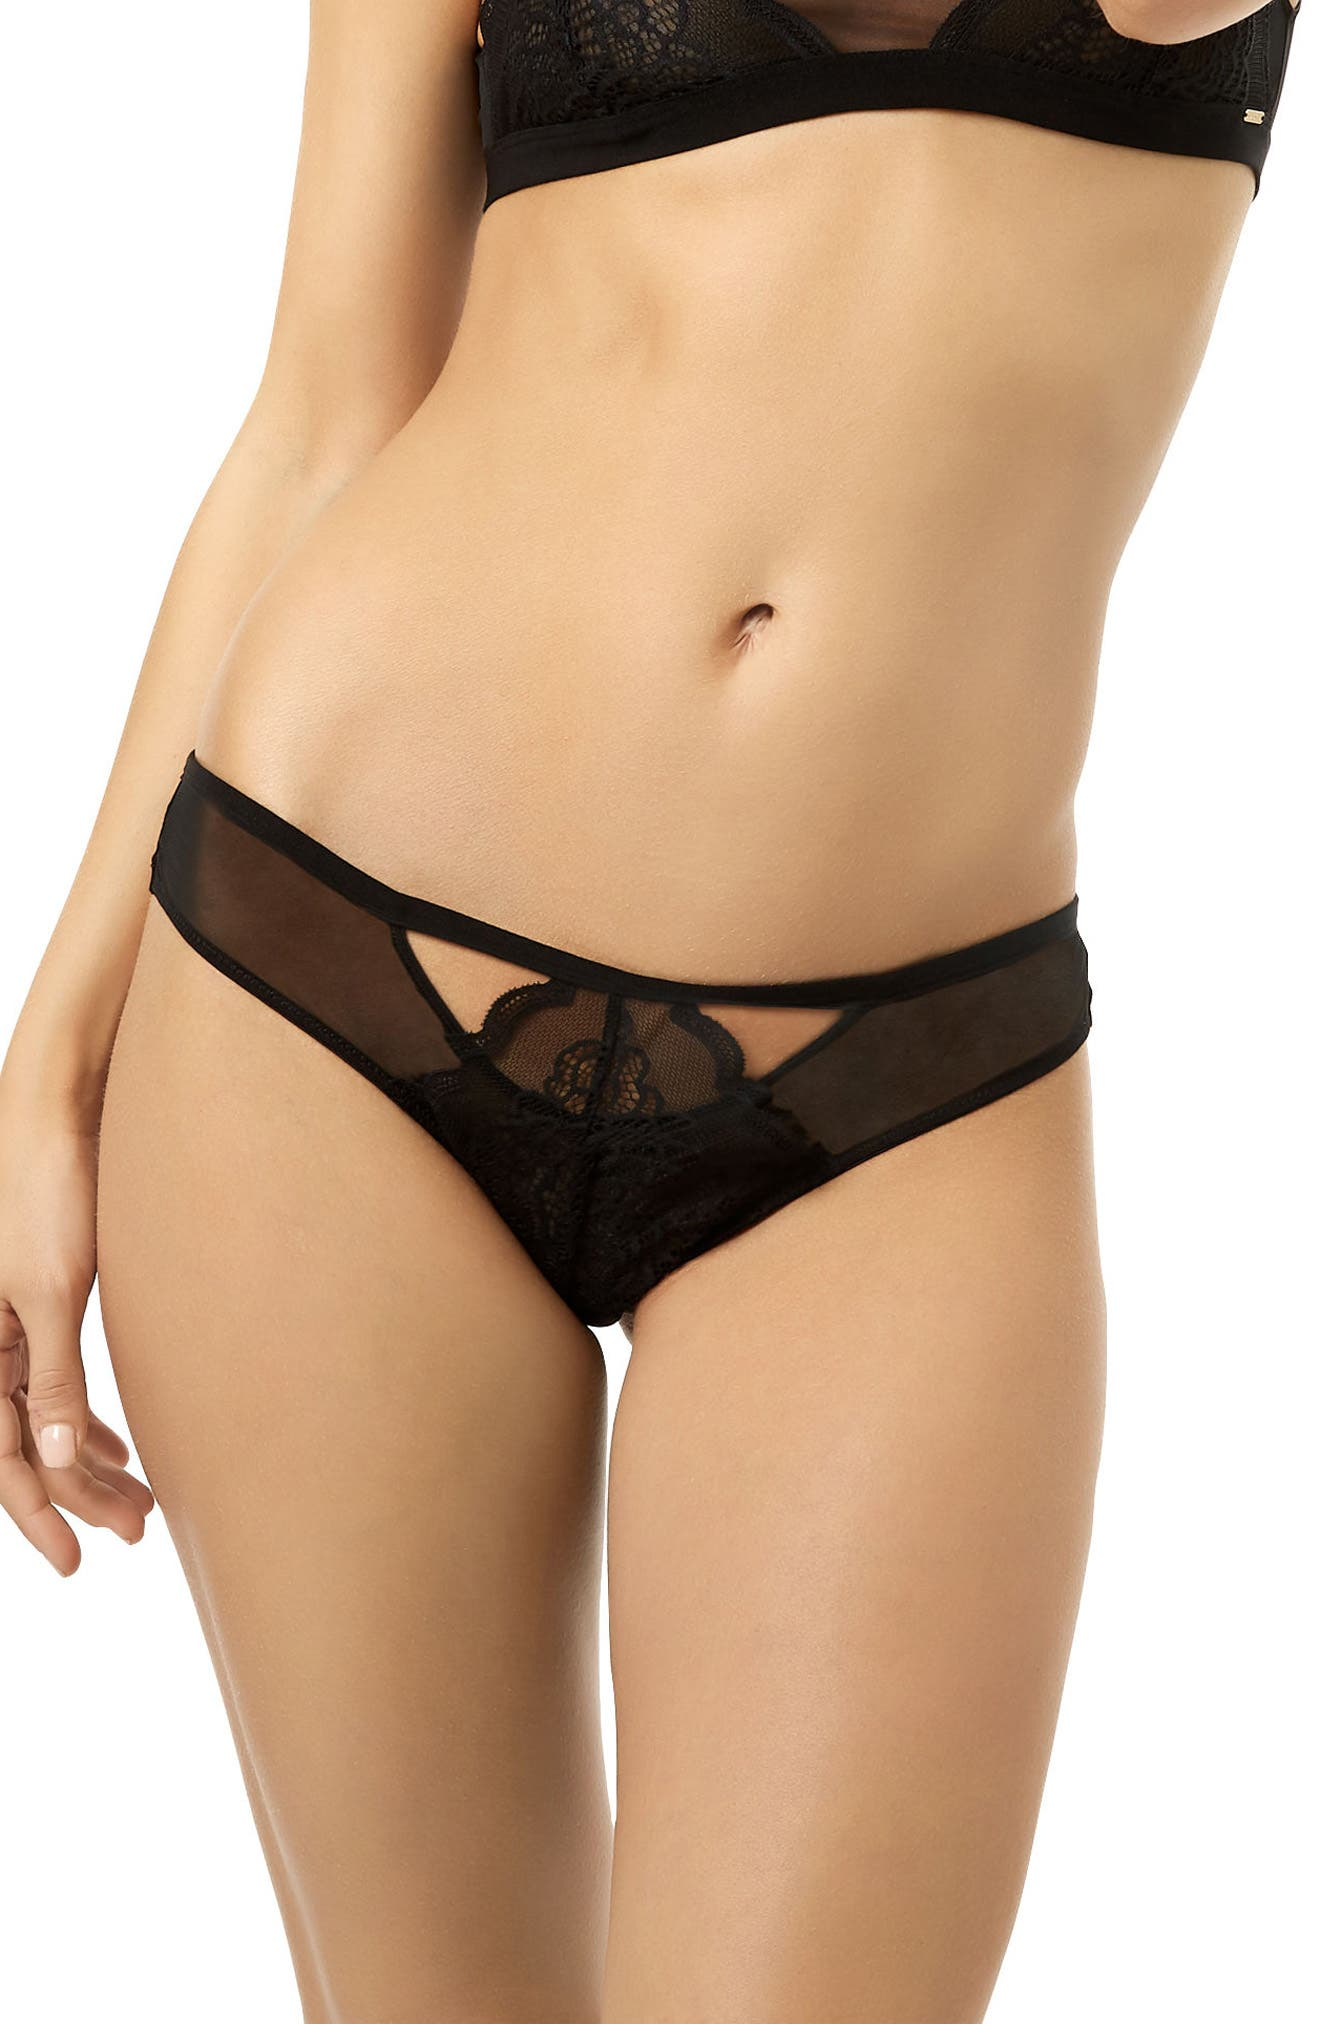 Astrid Cutout Panties,                         Main,                         color, Black